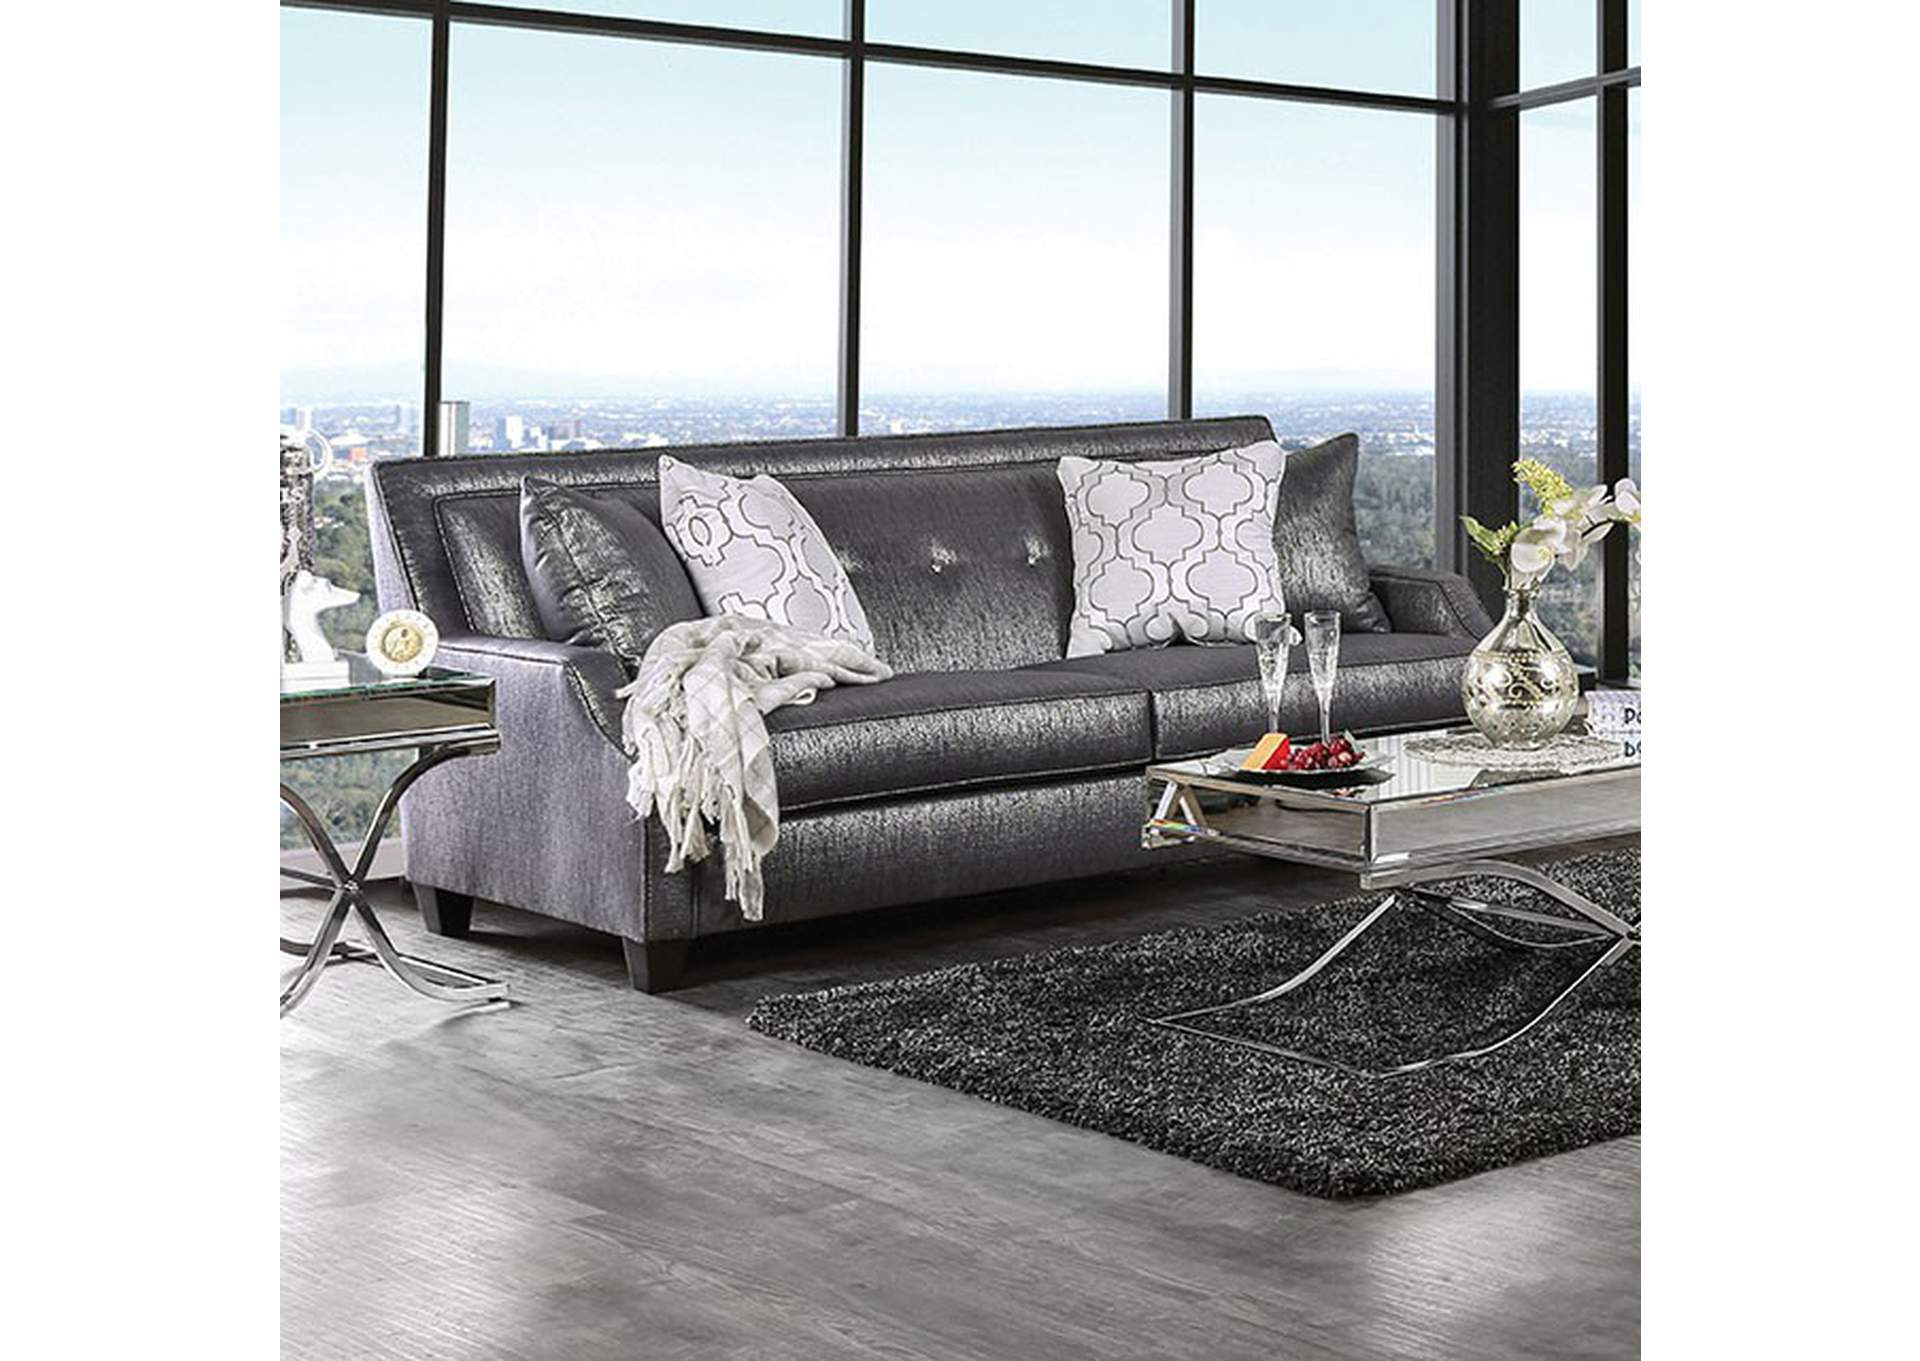 Awesome K K Custom Furniture Massimo Shined Black Sofa W Pillows Uwap Interior Chair Design Uwaporg